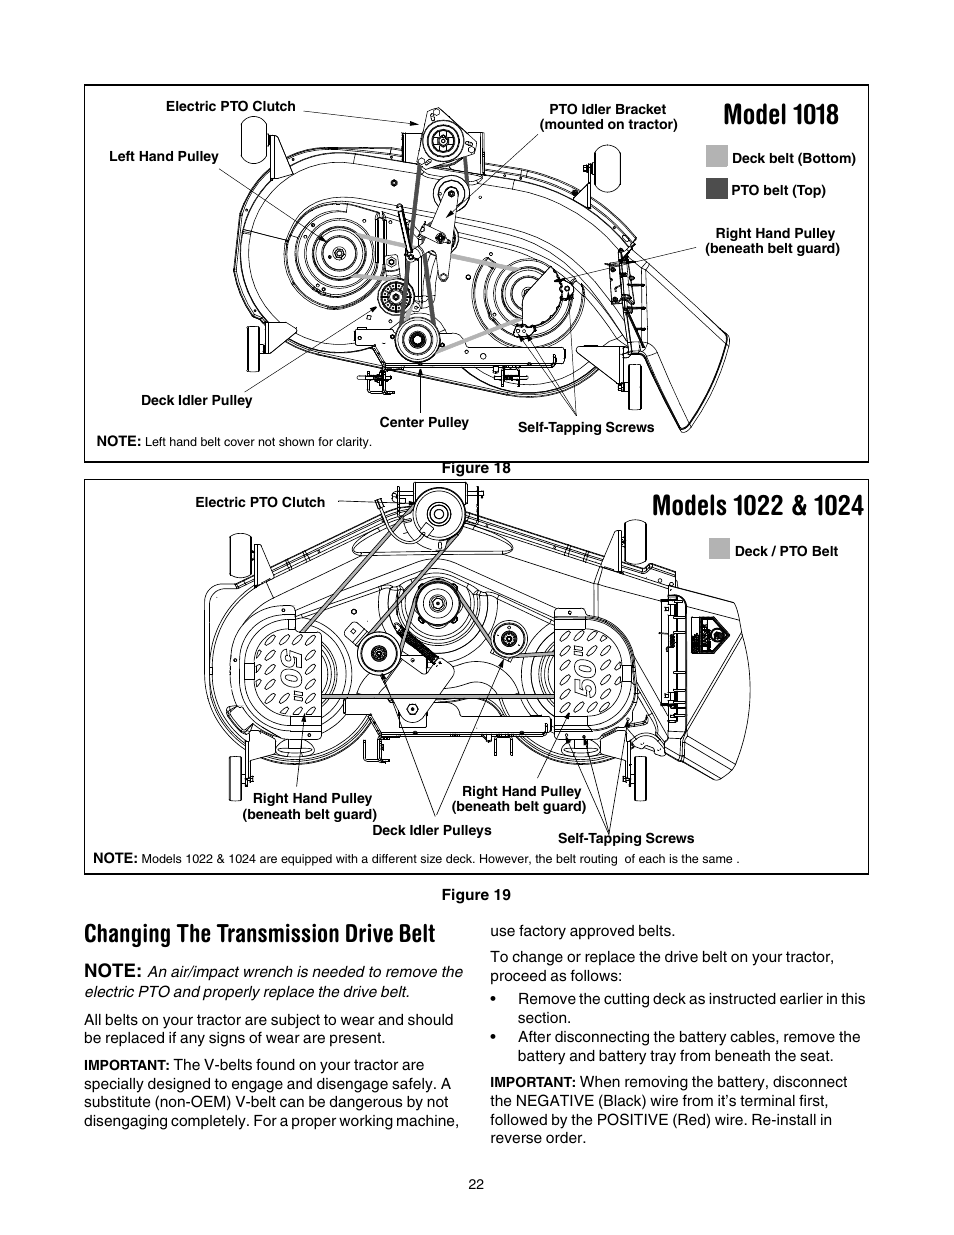 medium resolution of model 1018 changing the transmission drive belt cub cadet lt1022model 1018 changing the transmission